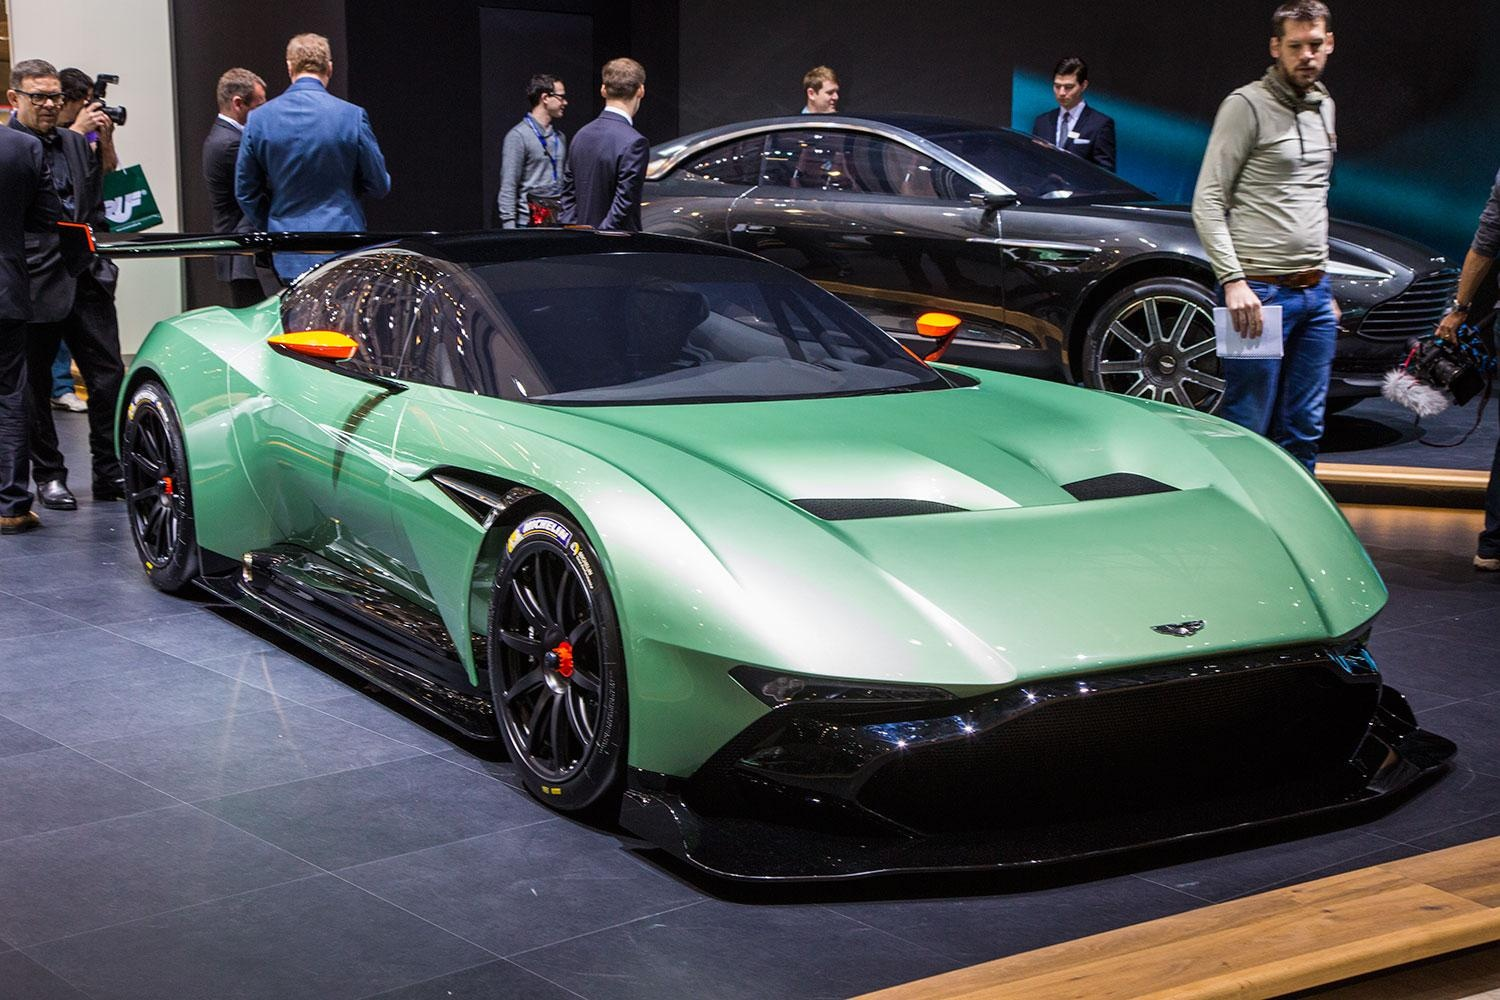 2016 aston martin vulcan ready to bomb the world s racetracks ruf lyf. Black Bedroom Furniture Sets. Home Design Ideas